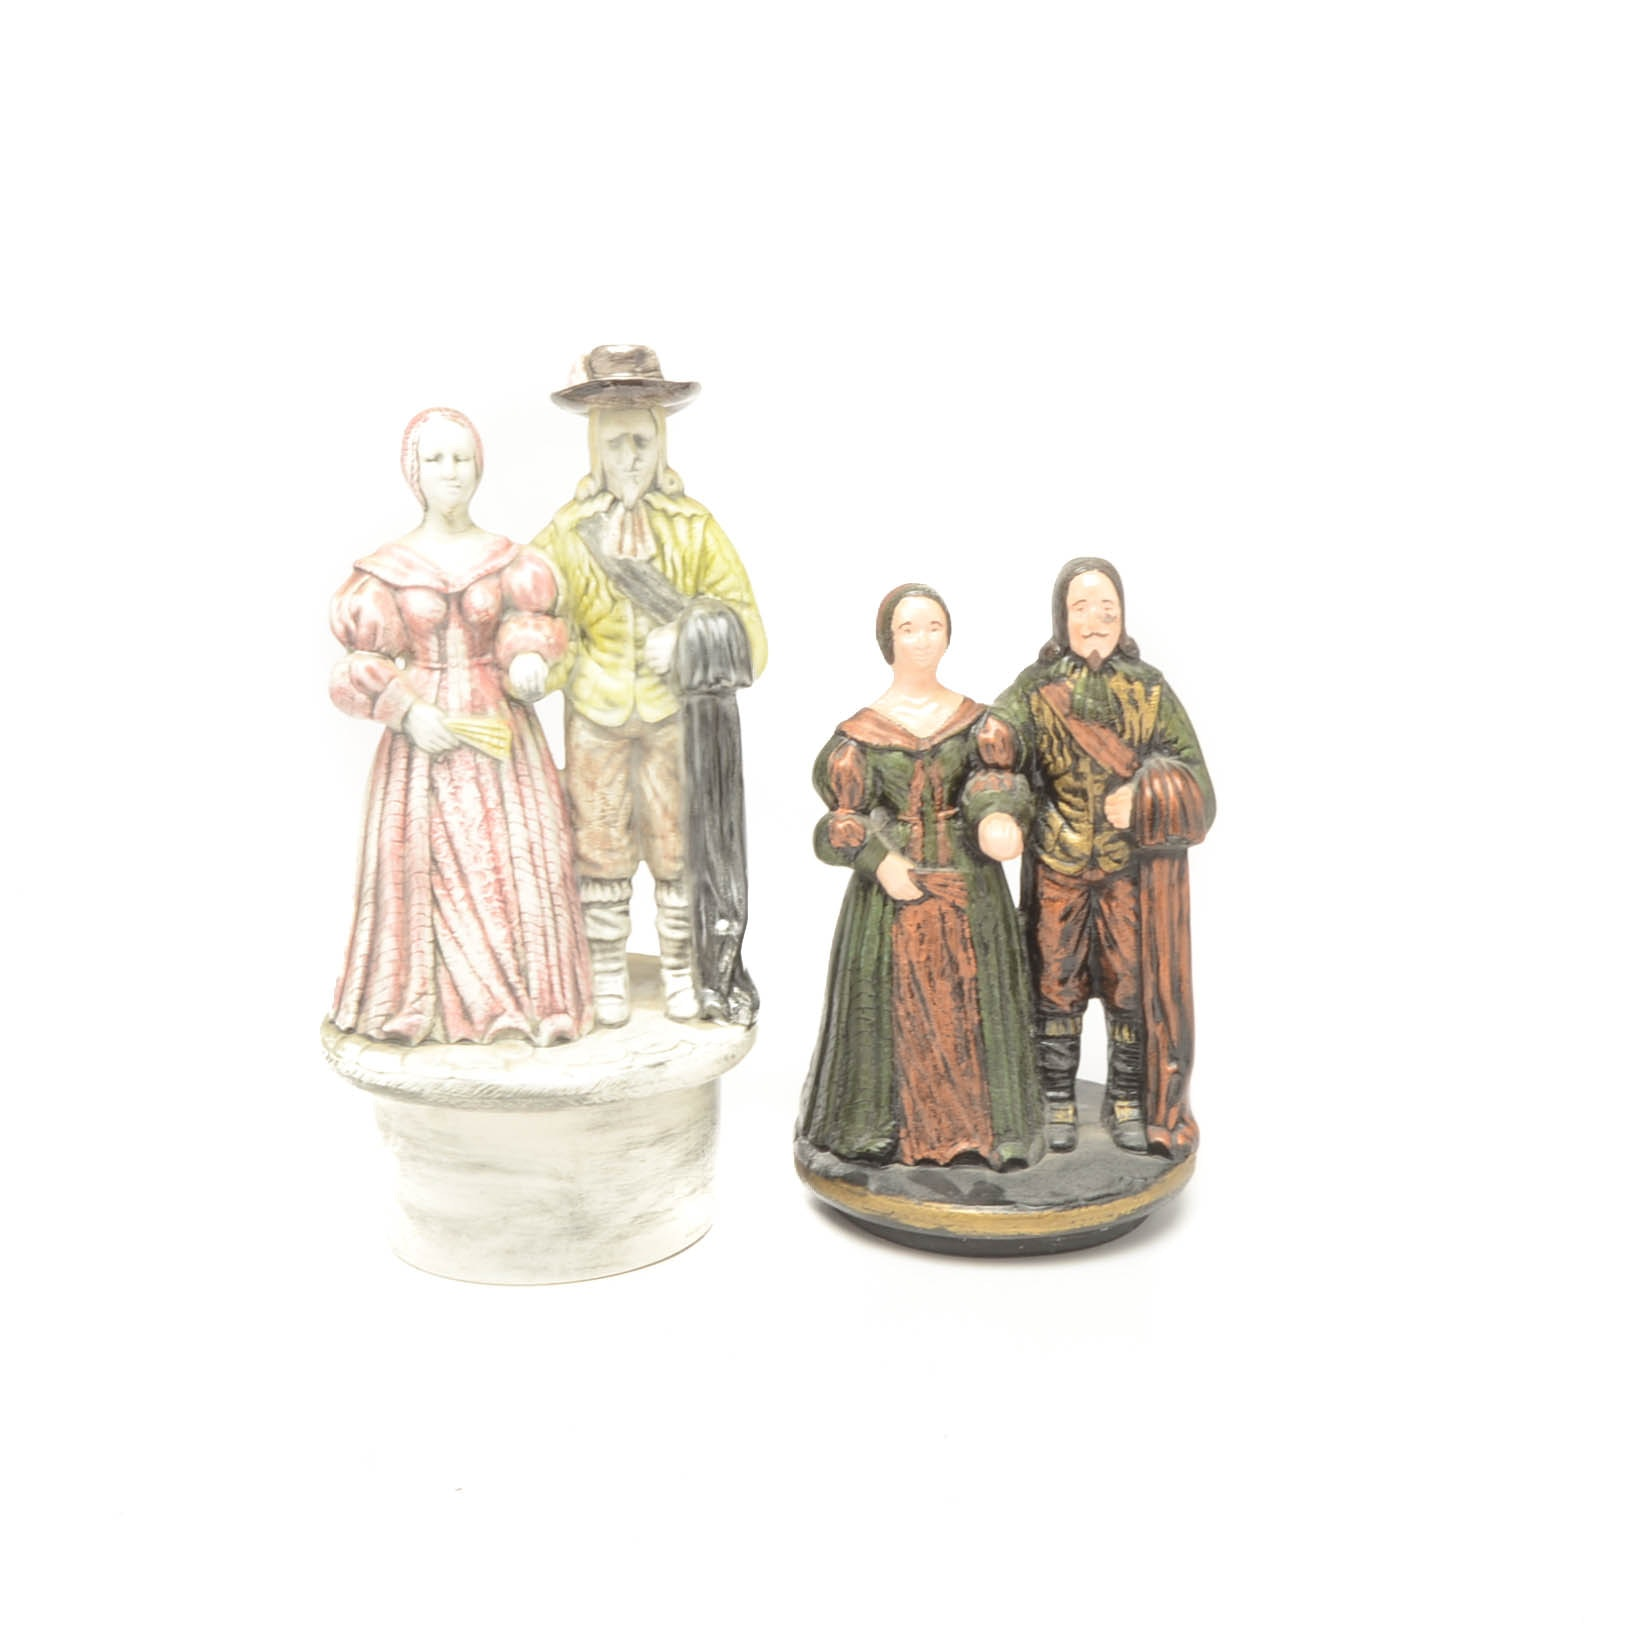 Pair of Ceramic Figurines